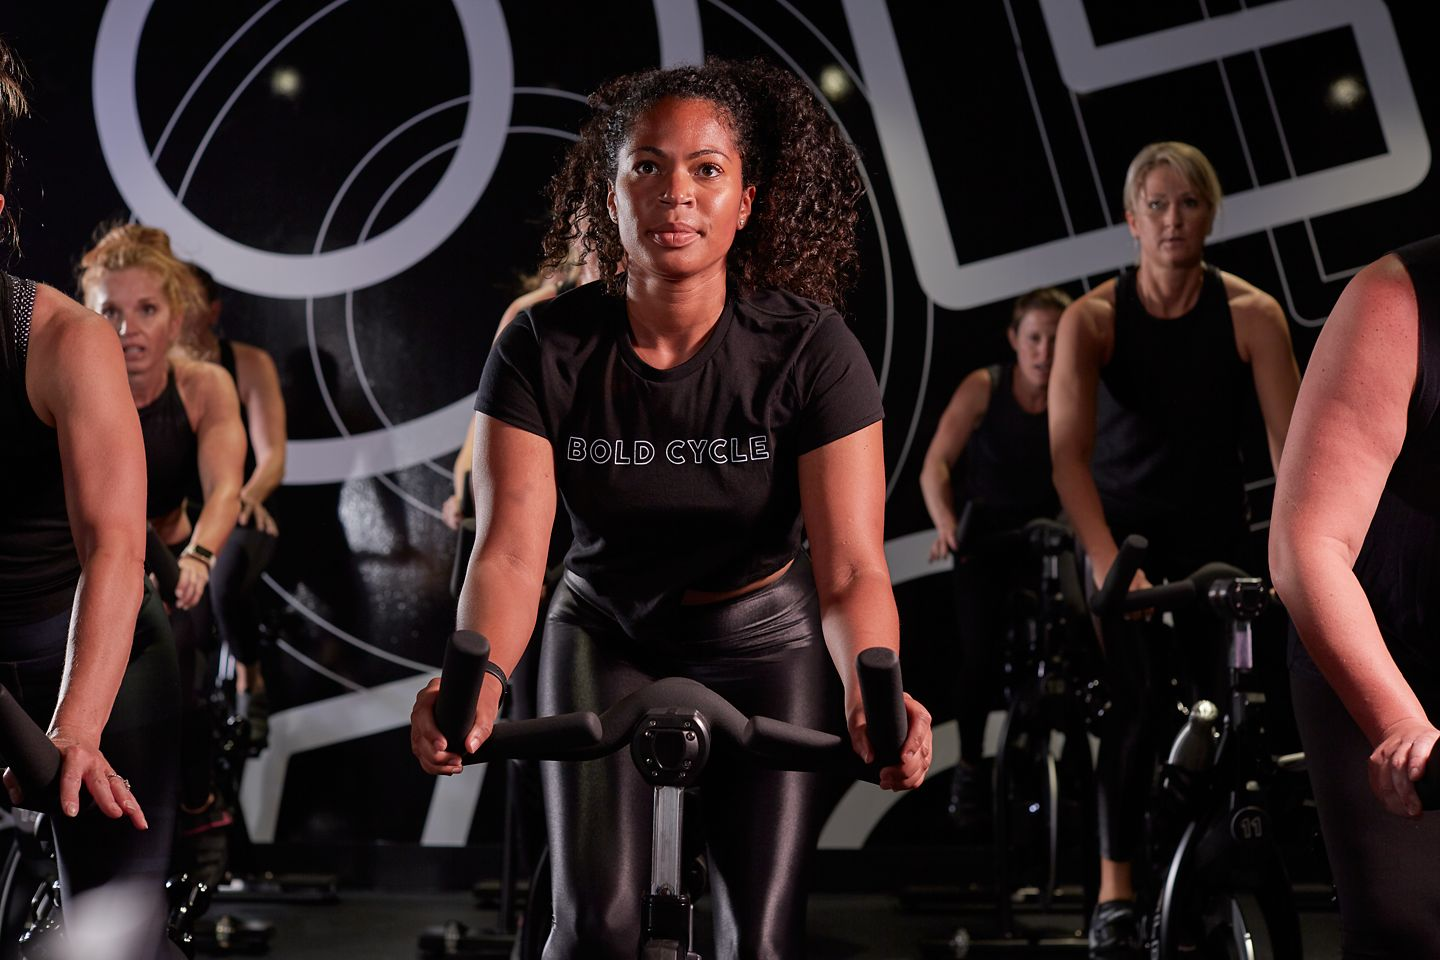 Bold Cycle indoor cycling class